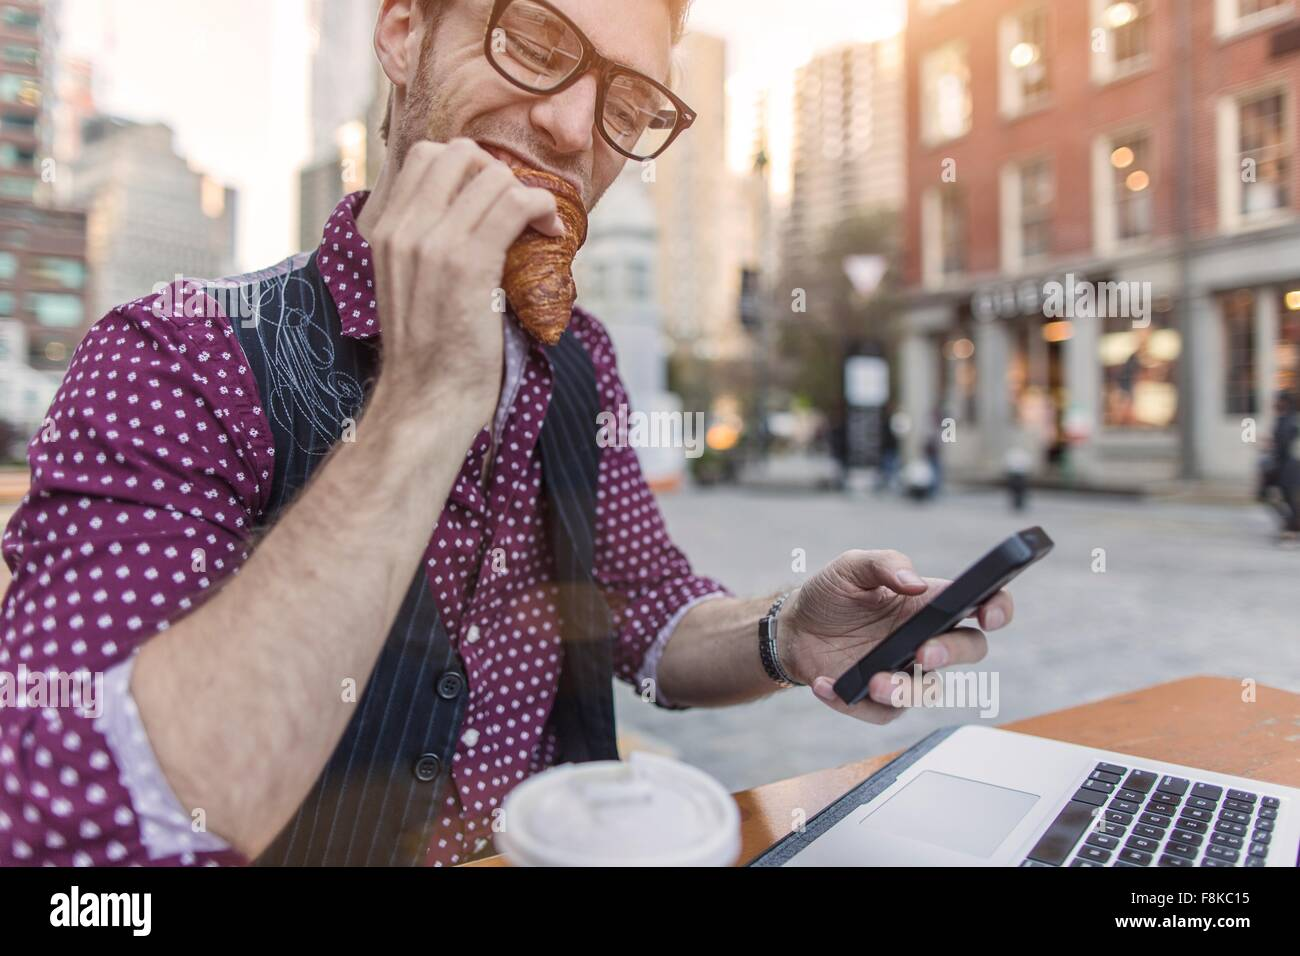 Stressed young businessman reading smartphone whilst eating at sidewalk cafe, New York, USA - Stock Image